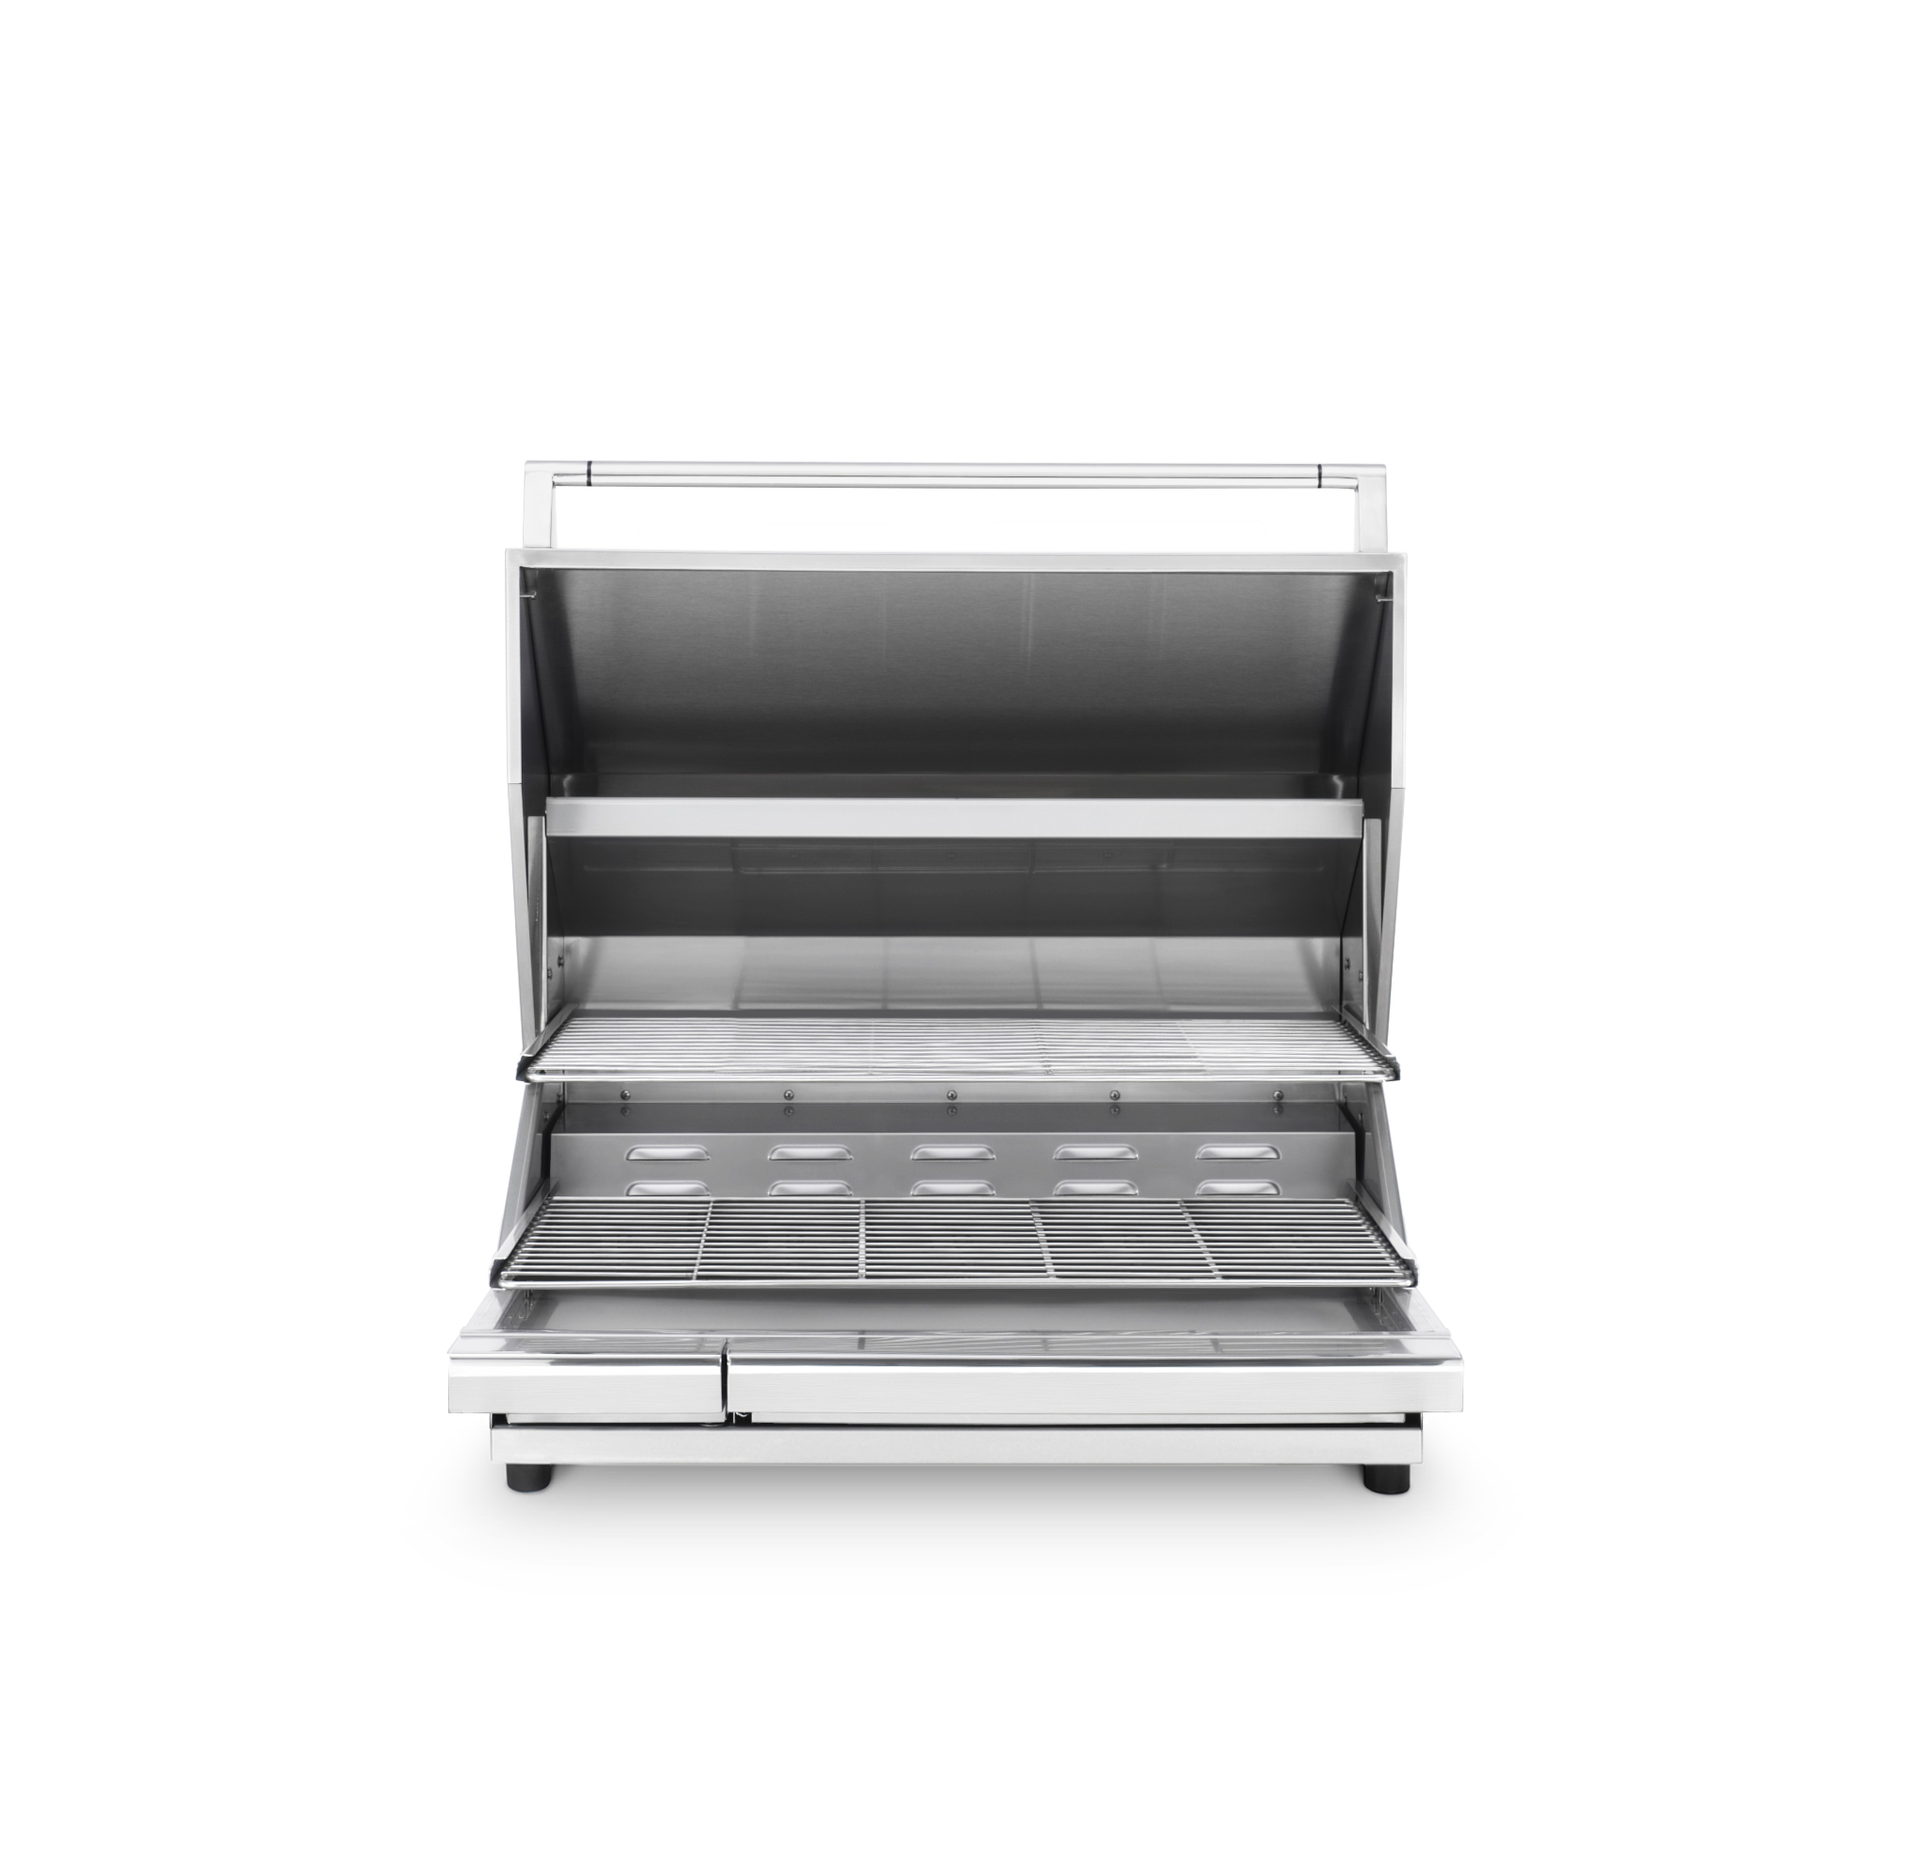 Countertop Smoker For Residential Pro